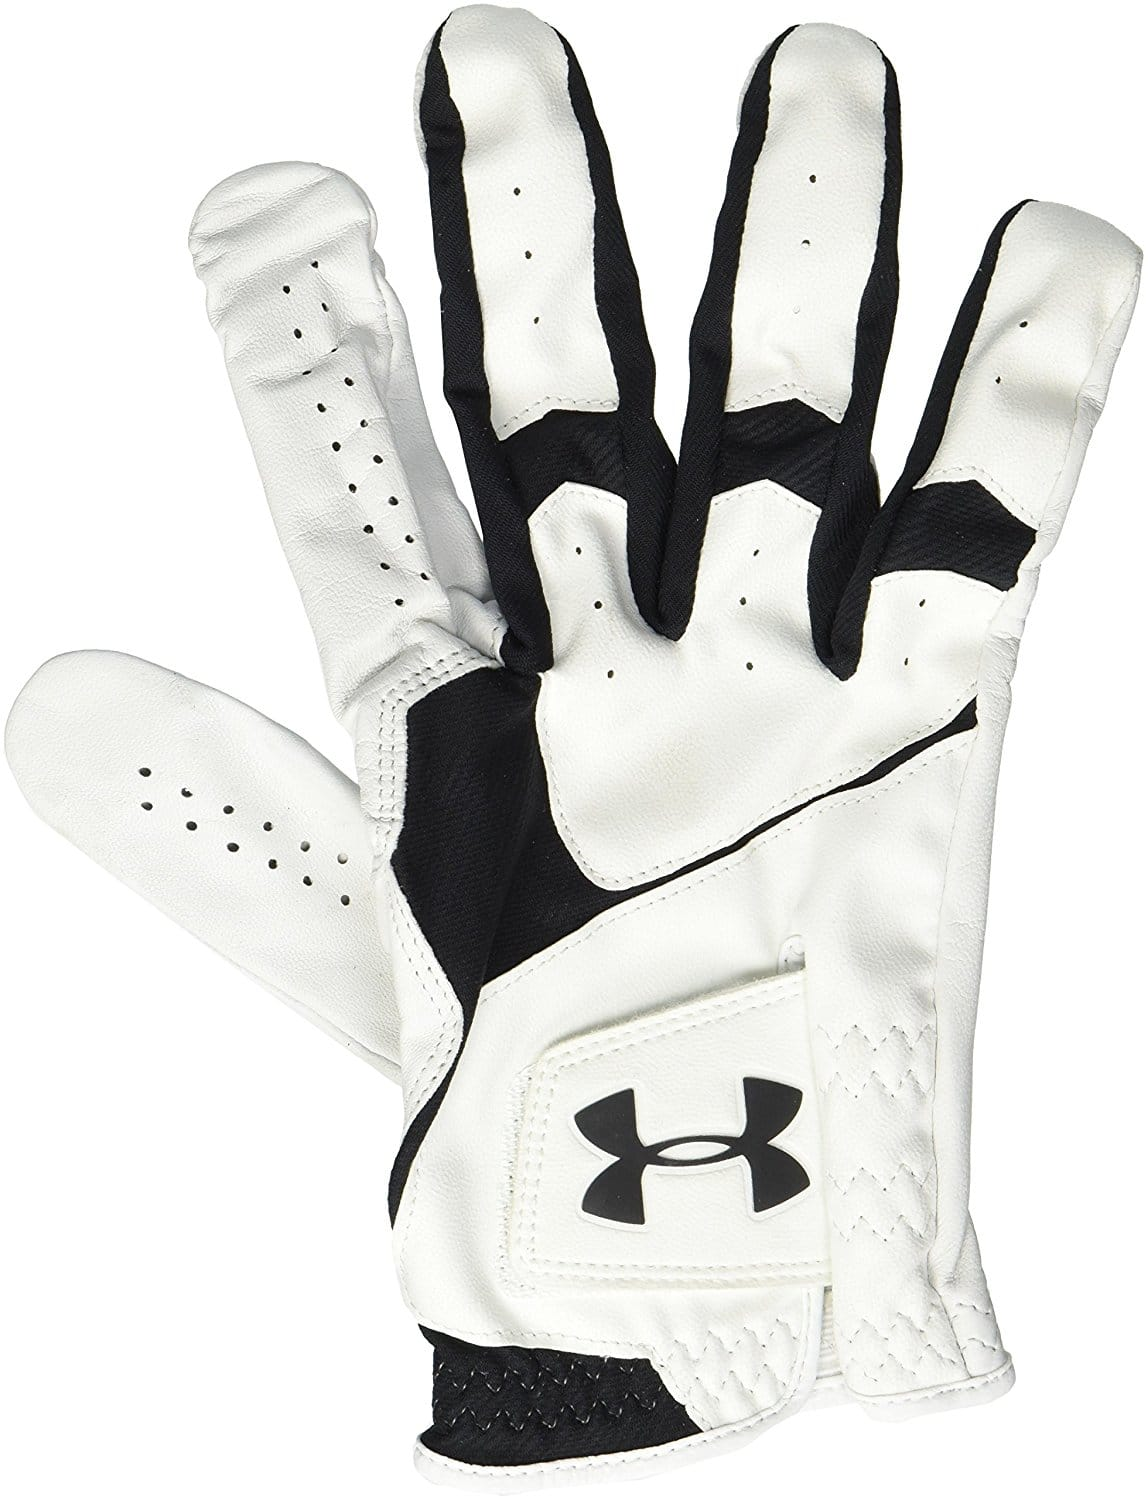 Under Armour Men's CoolSwitch Golf Glove Right Hand Large $11.69